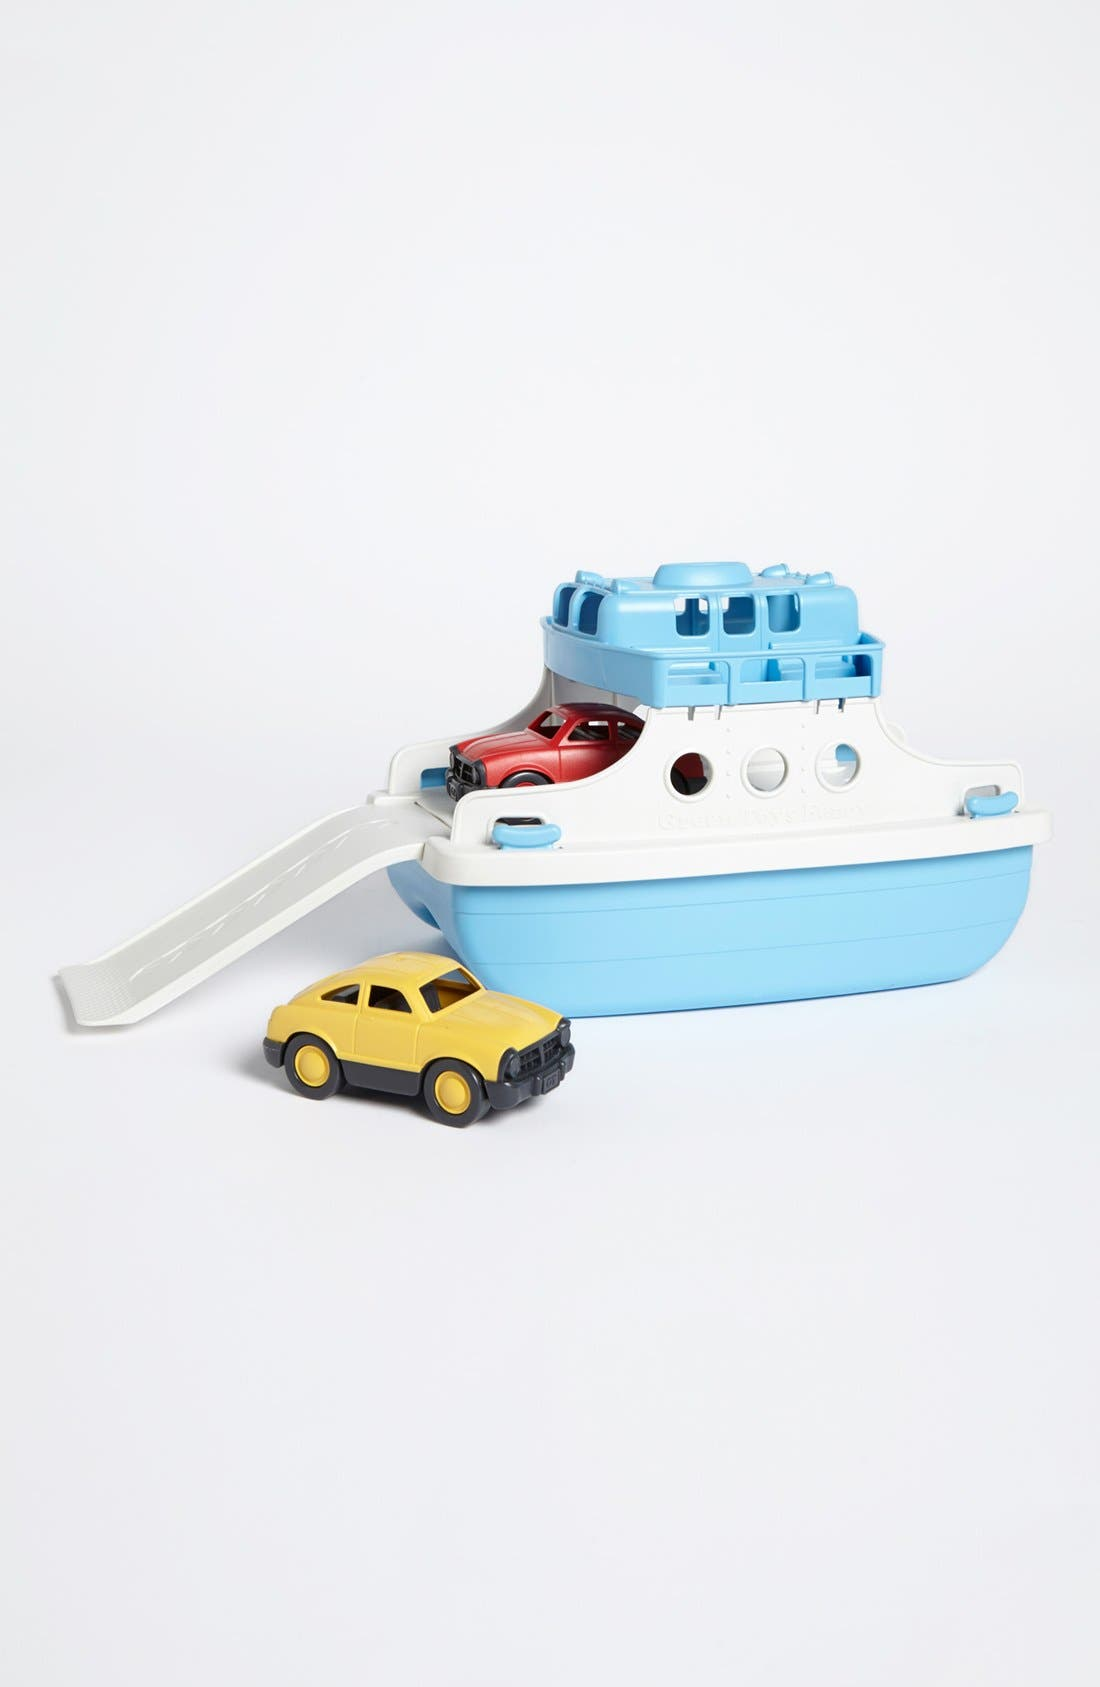 Alternate Image 1 Selected - Green Toys Ferry Boat Toy